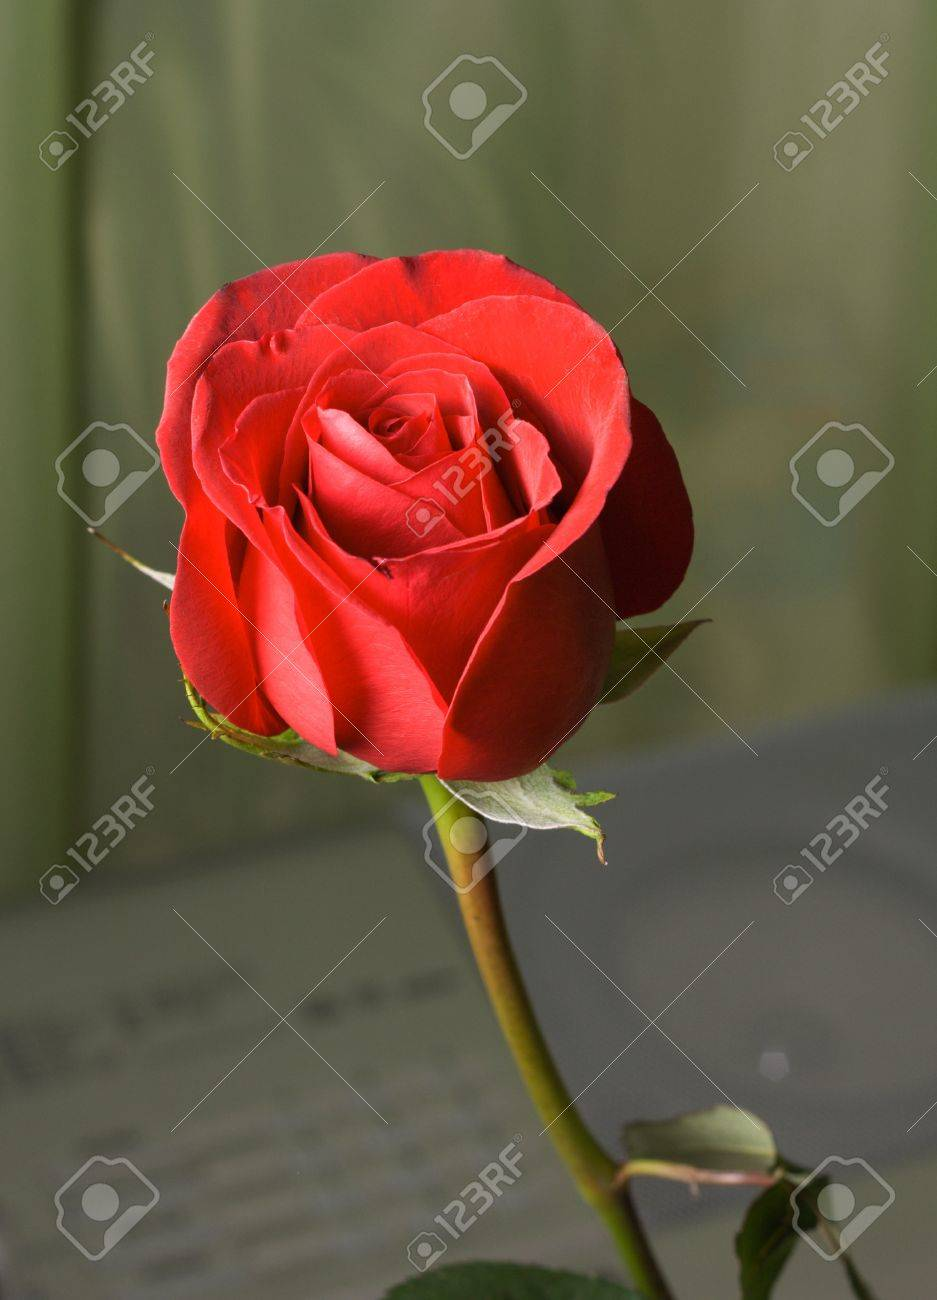 Single red rose on a colored background Stock Photo - 8905395